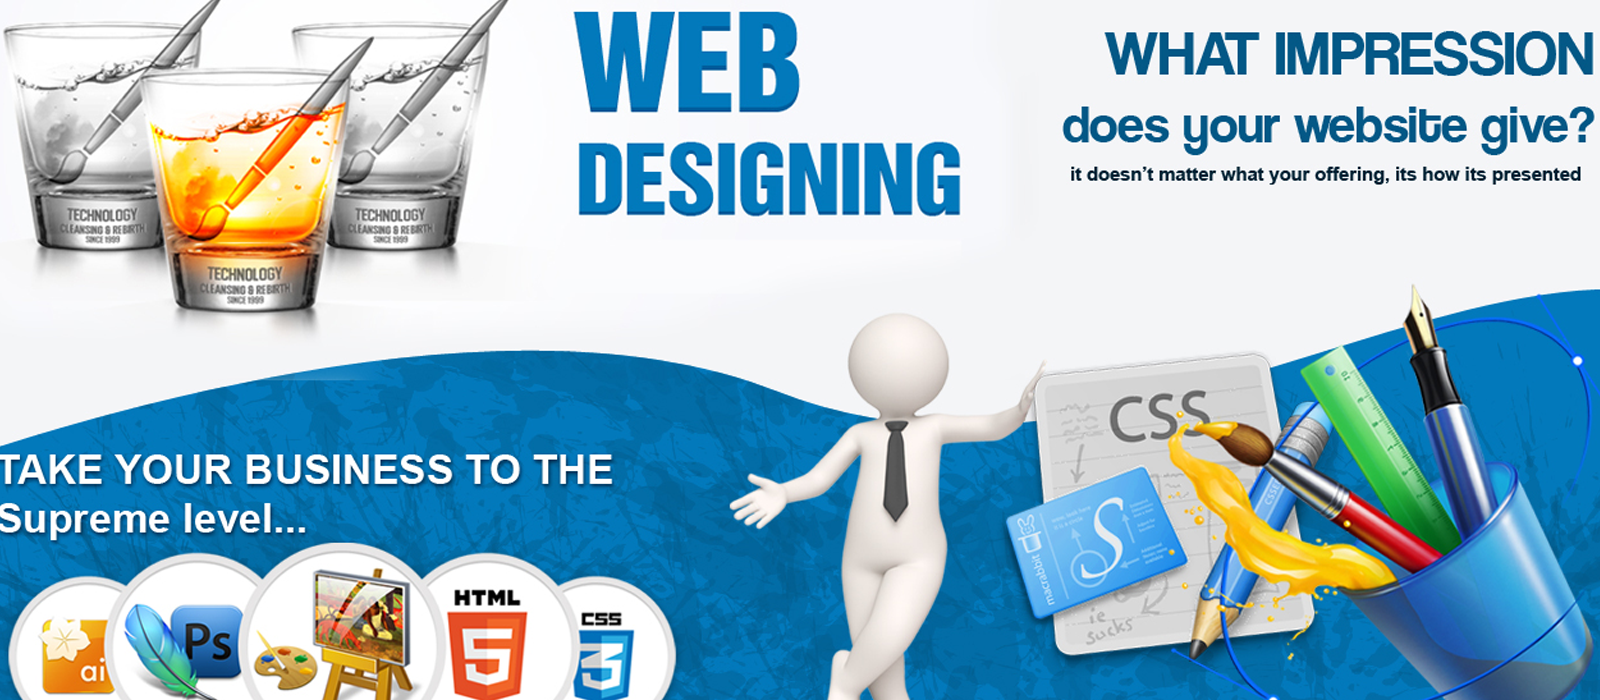 Web Design India With Images Website Design Services Website Development Company Web Design Services